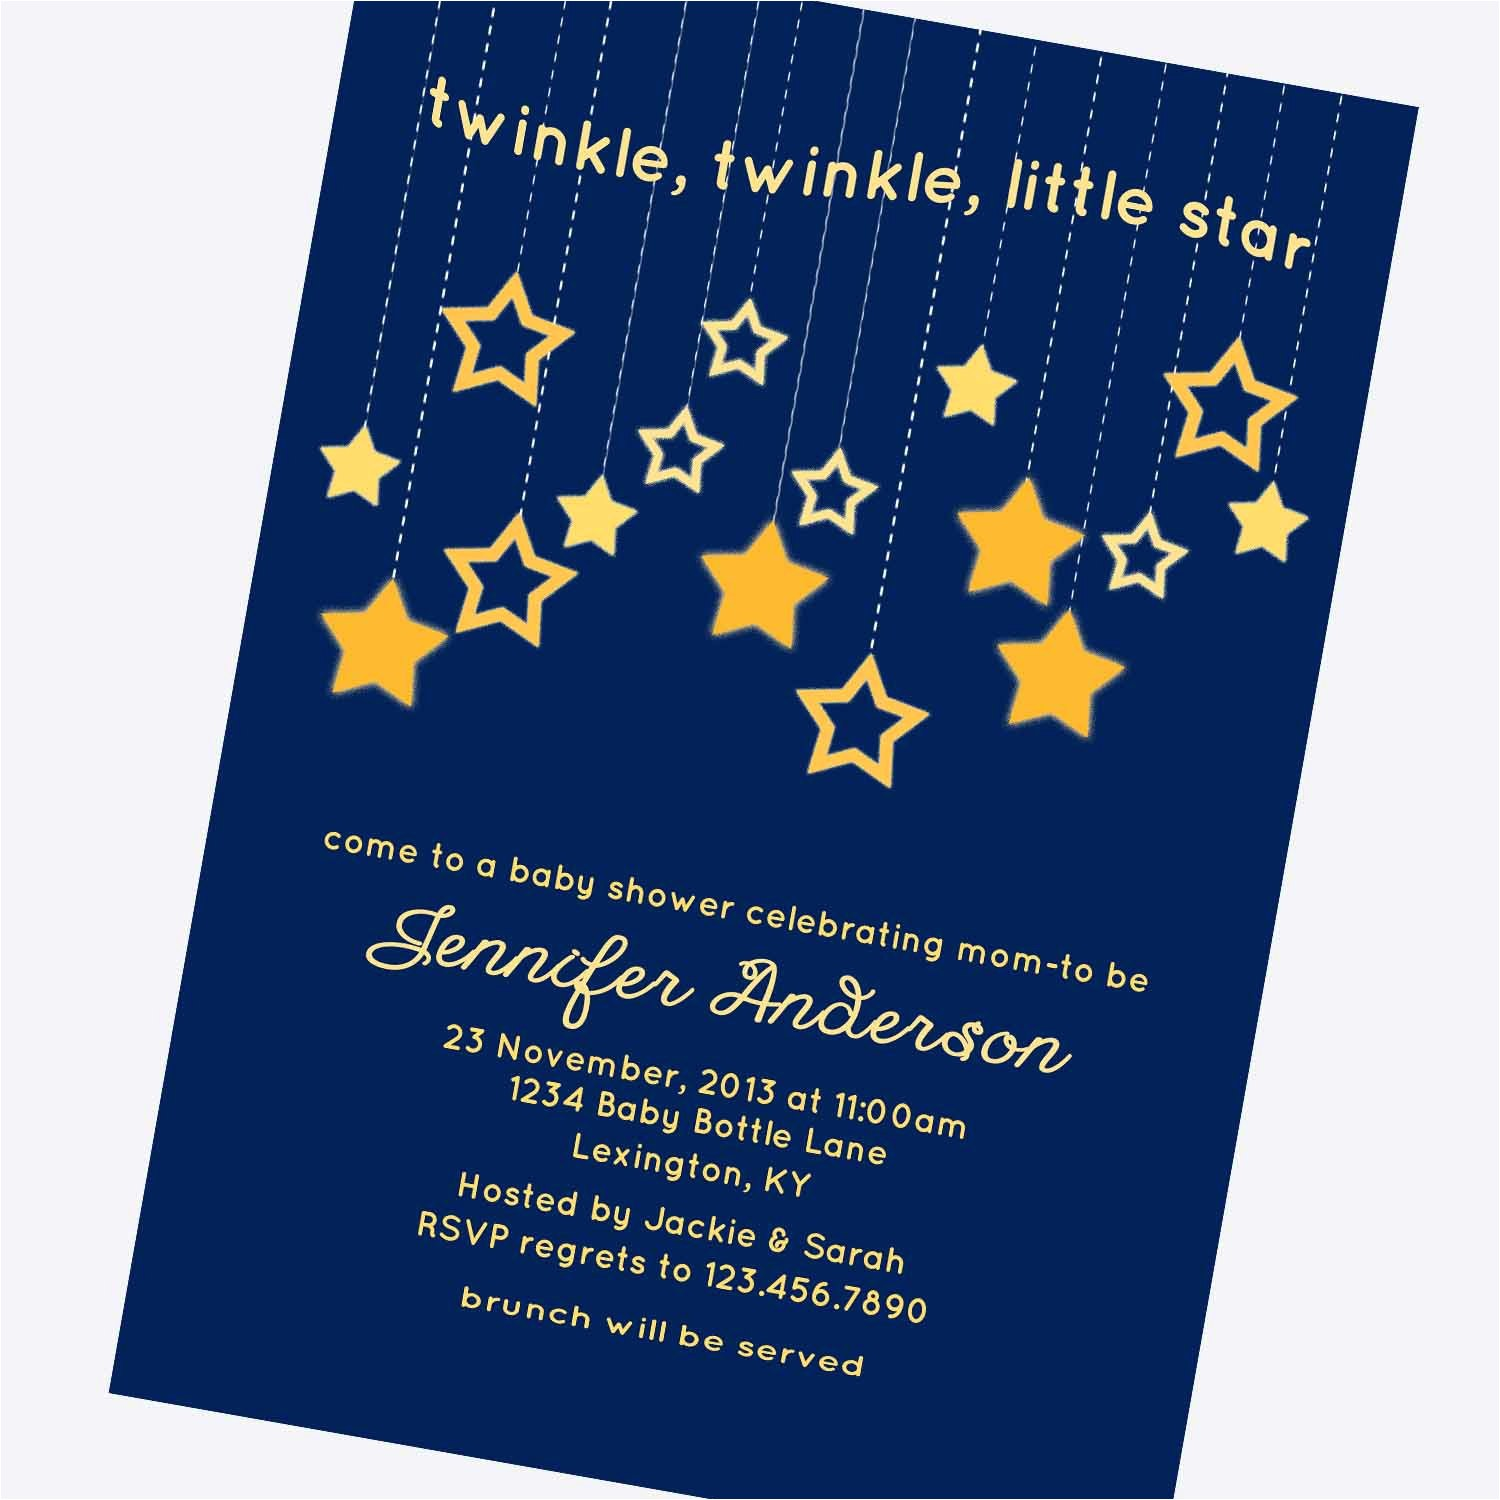 twinkle twinkle little star baby shower invitations template